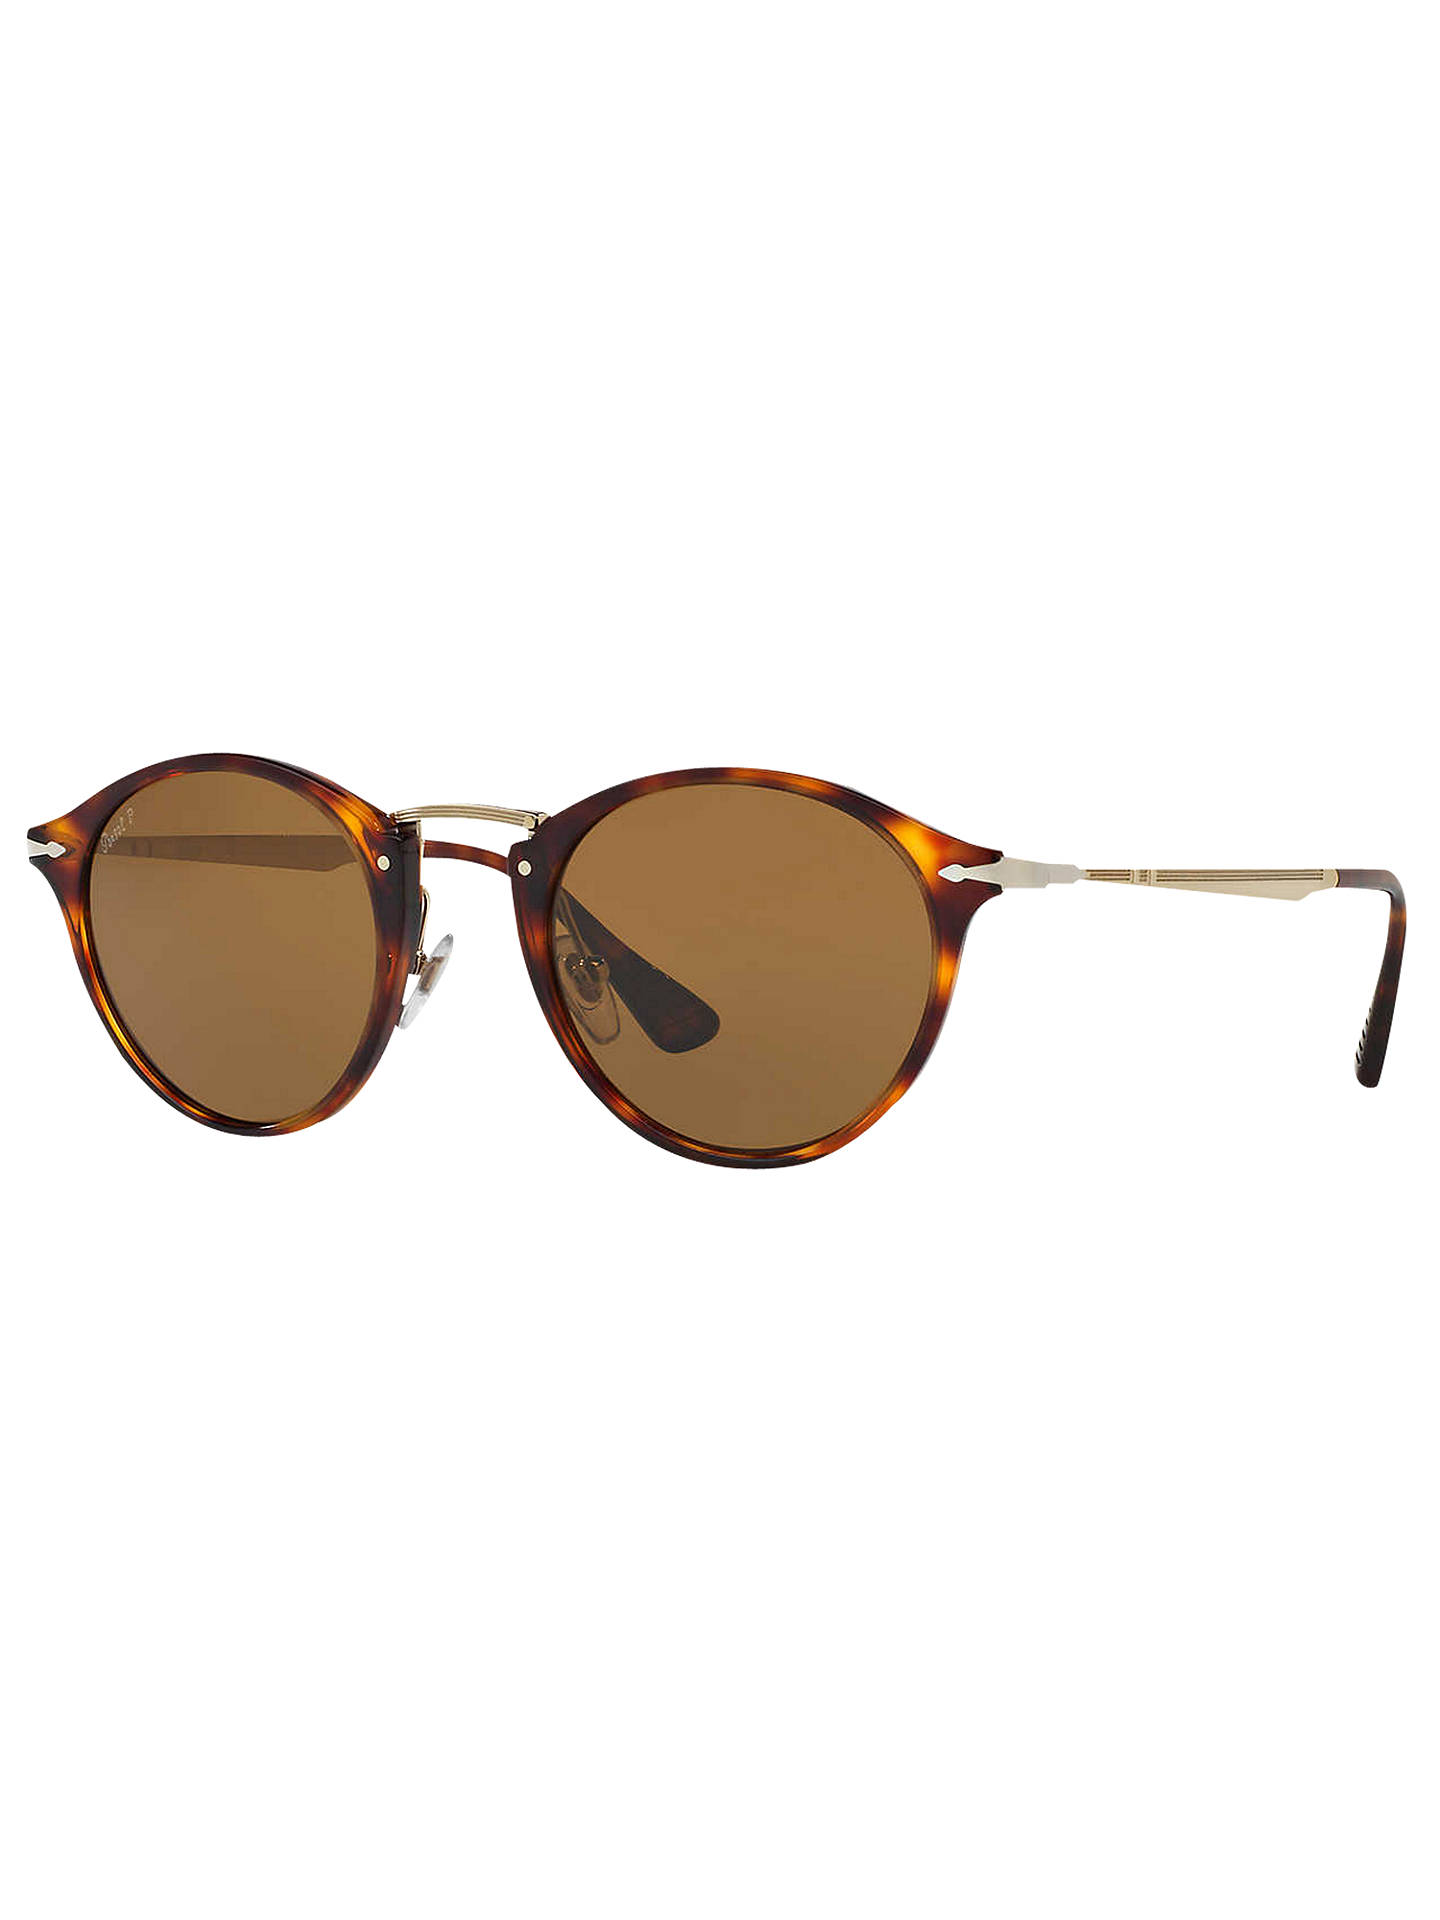 ebf9069324 Persol PO3166S Calligrapher Edition Polarised Oval Sunglasses at ...